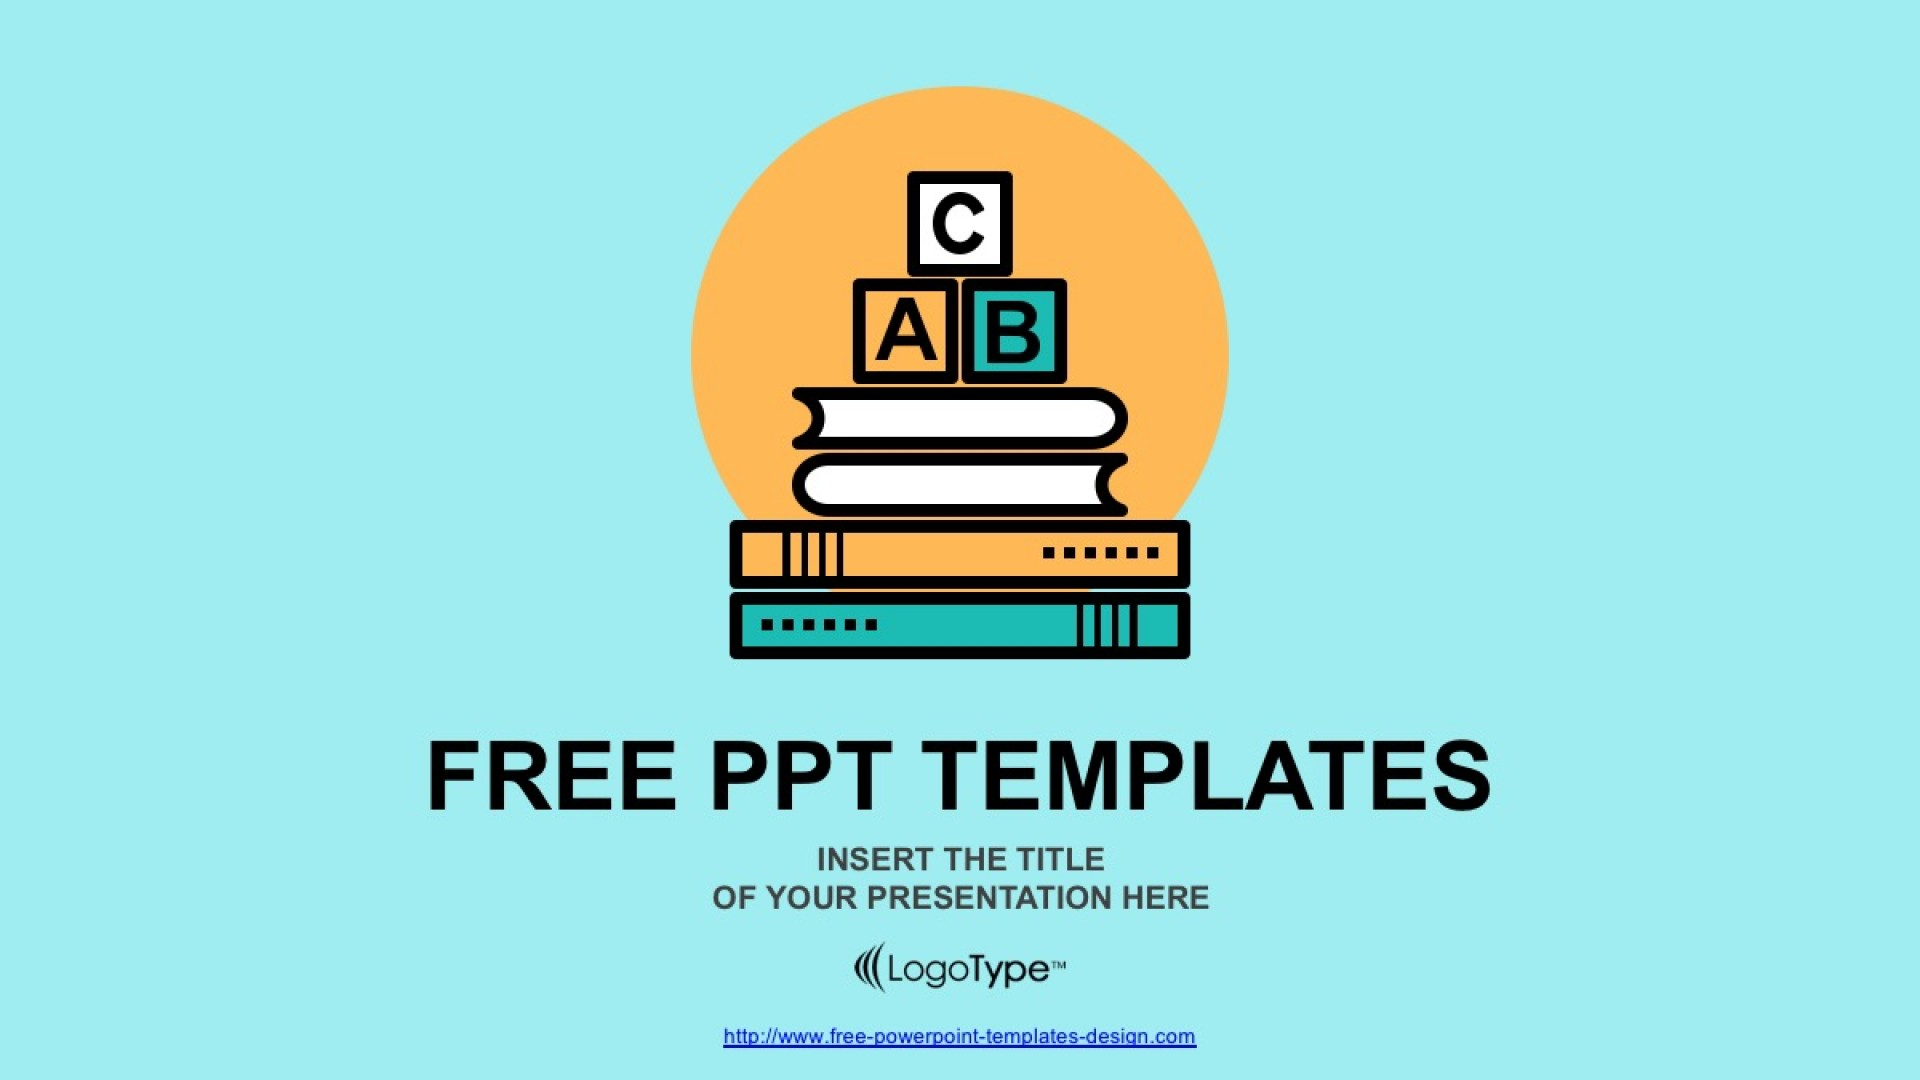 003 Top Free Education Powerpoint Template Picture  Templates Physical Download Downloadable For Teacher Design1920